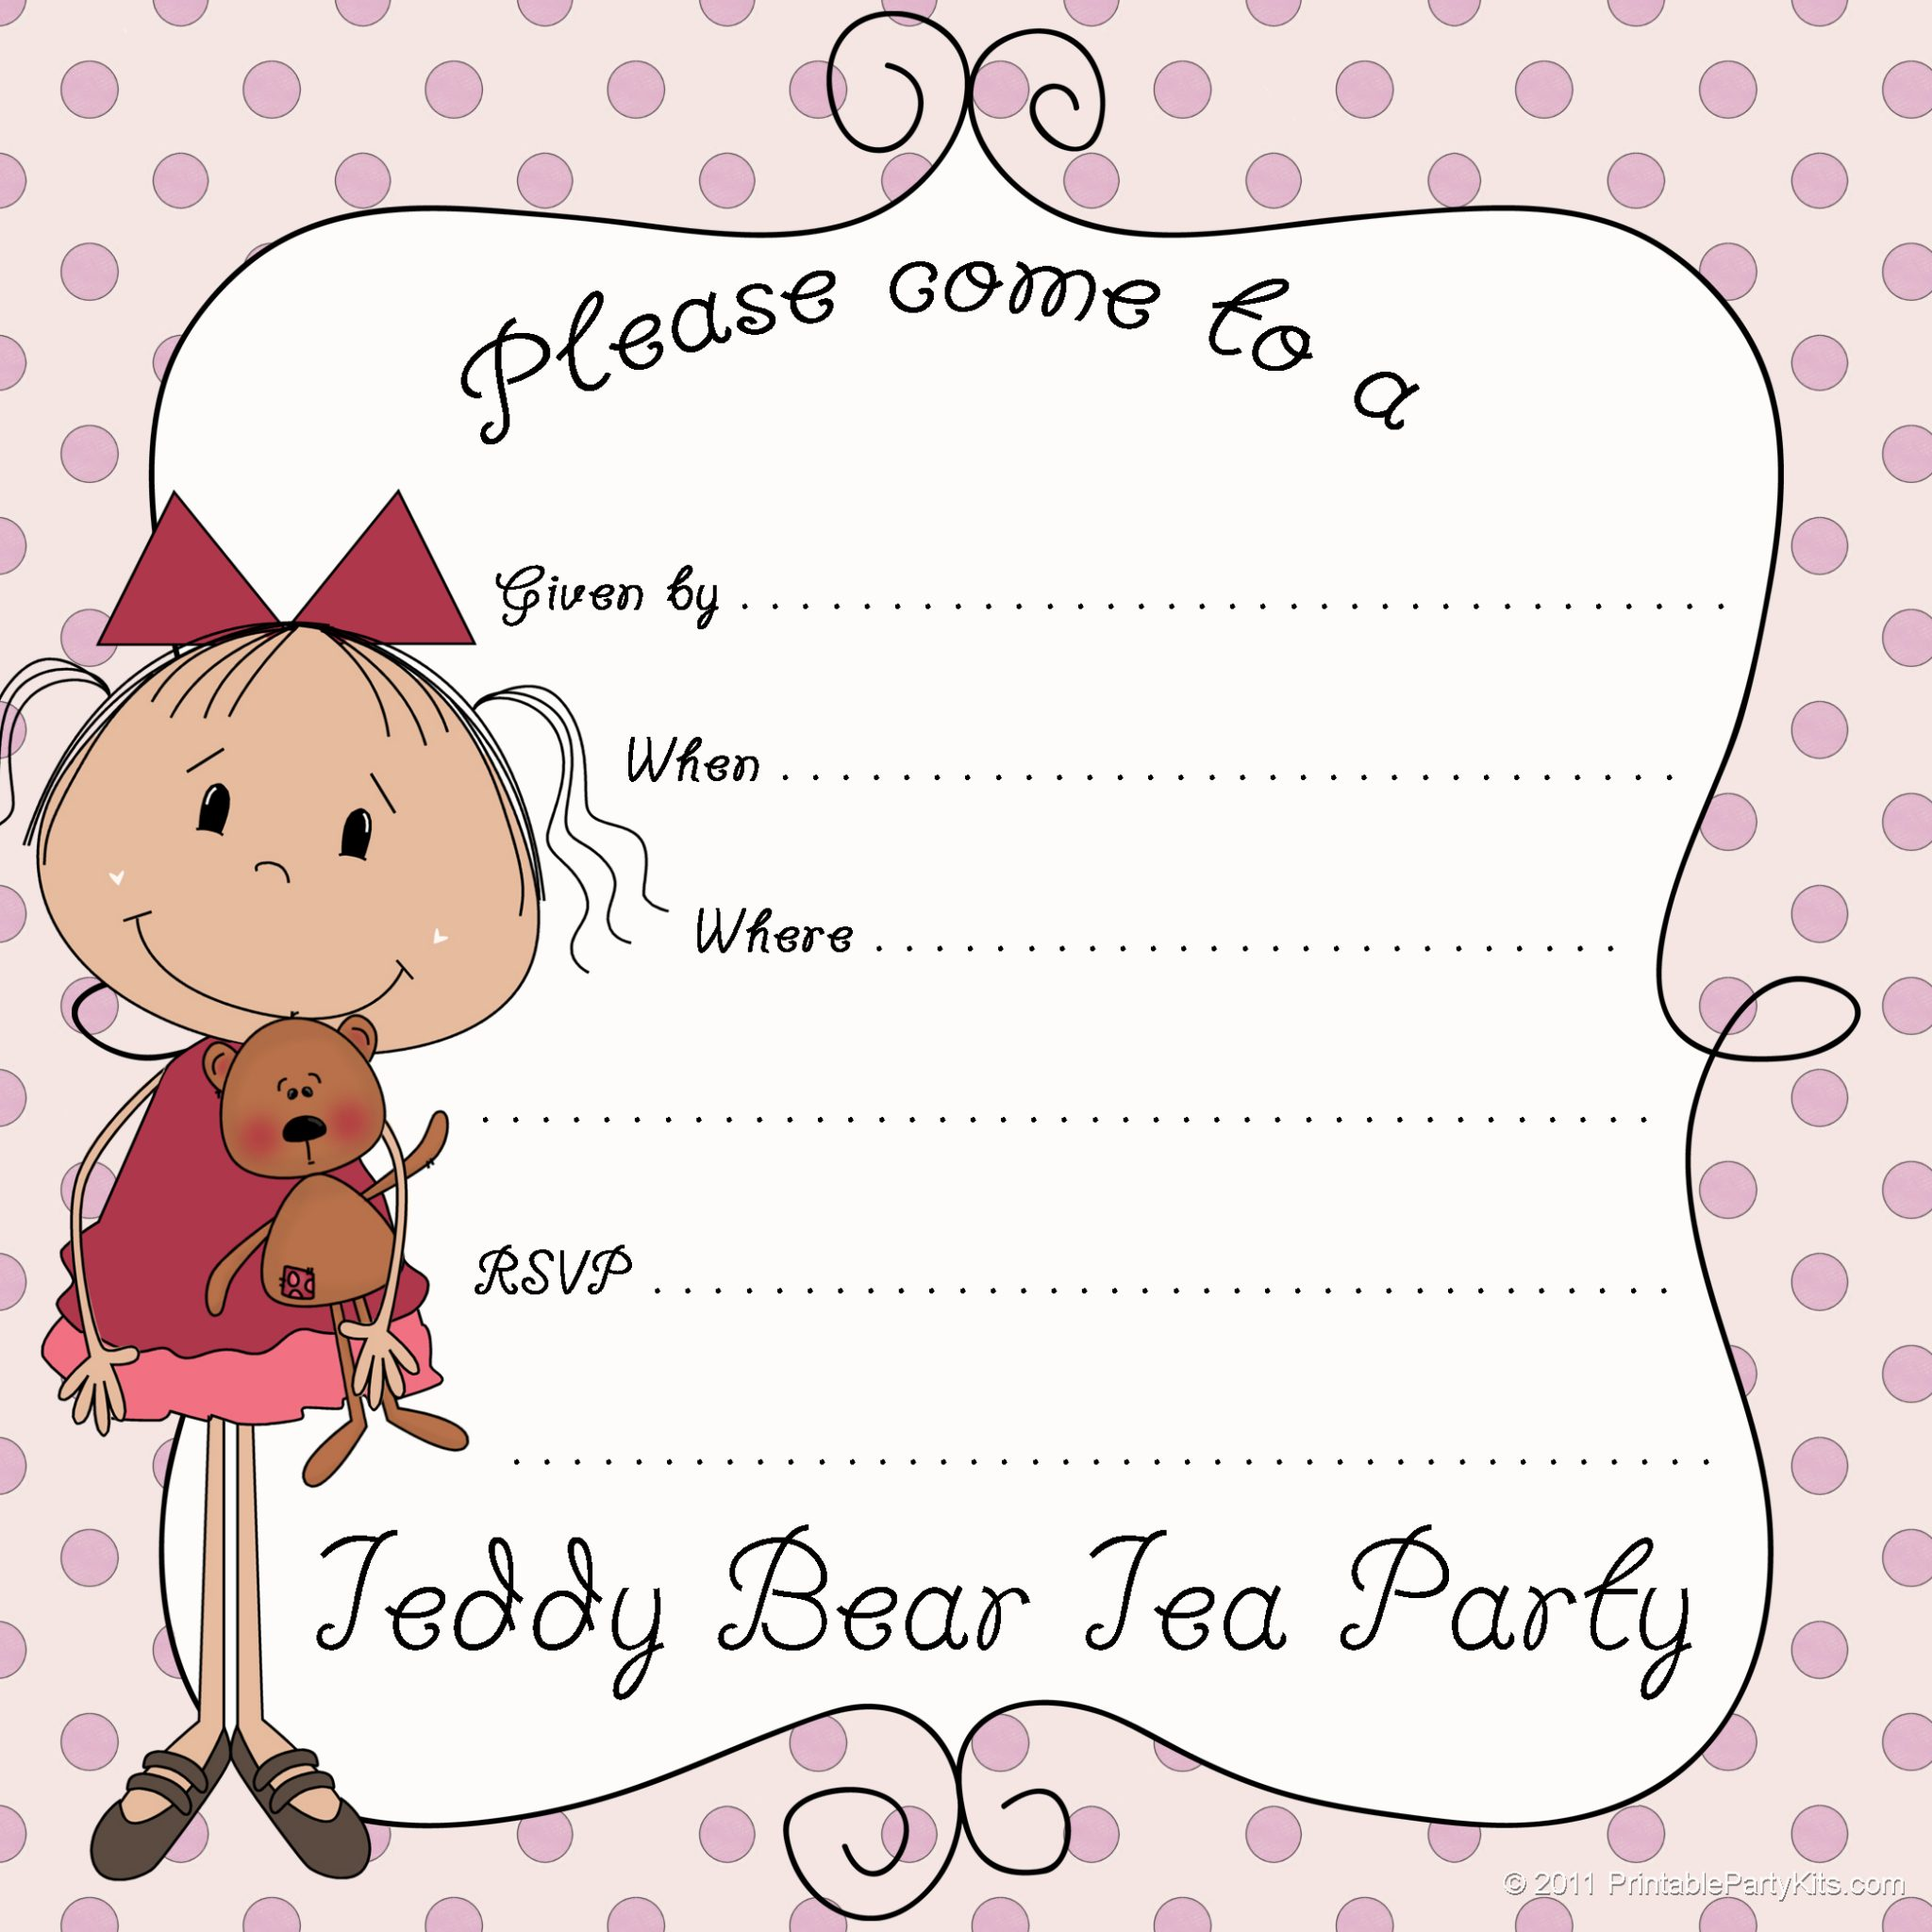 Free Printable Teddy Bear Tea Party Invitations – Invitation to Tea Party